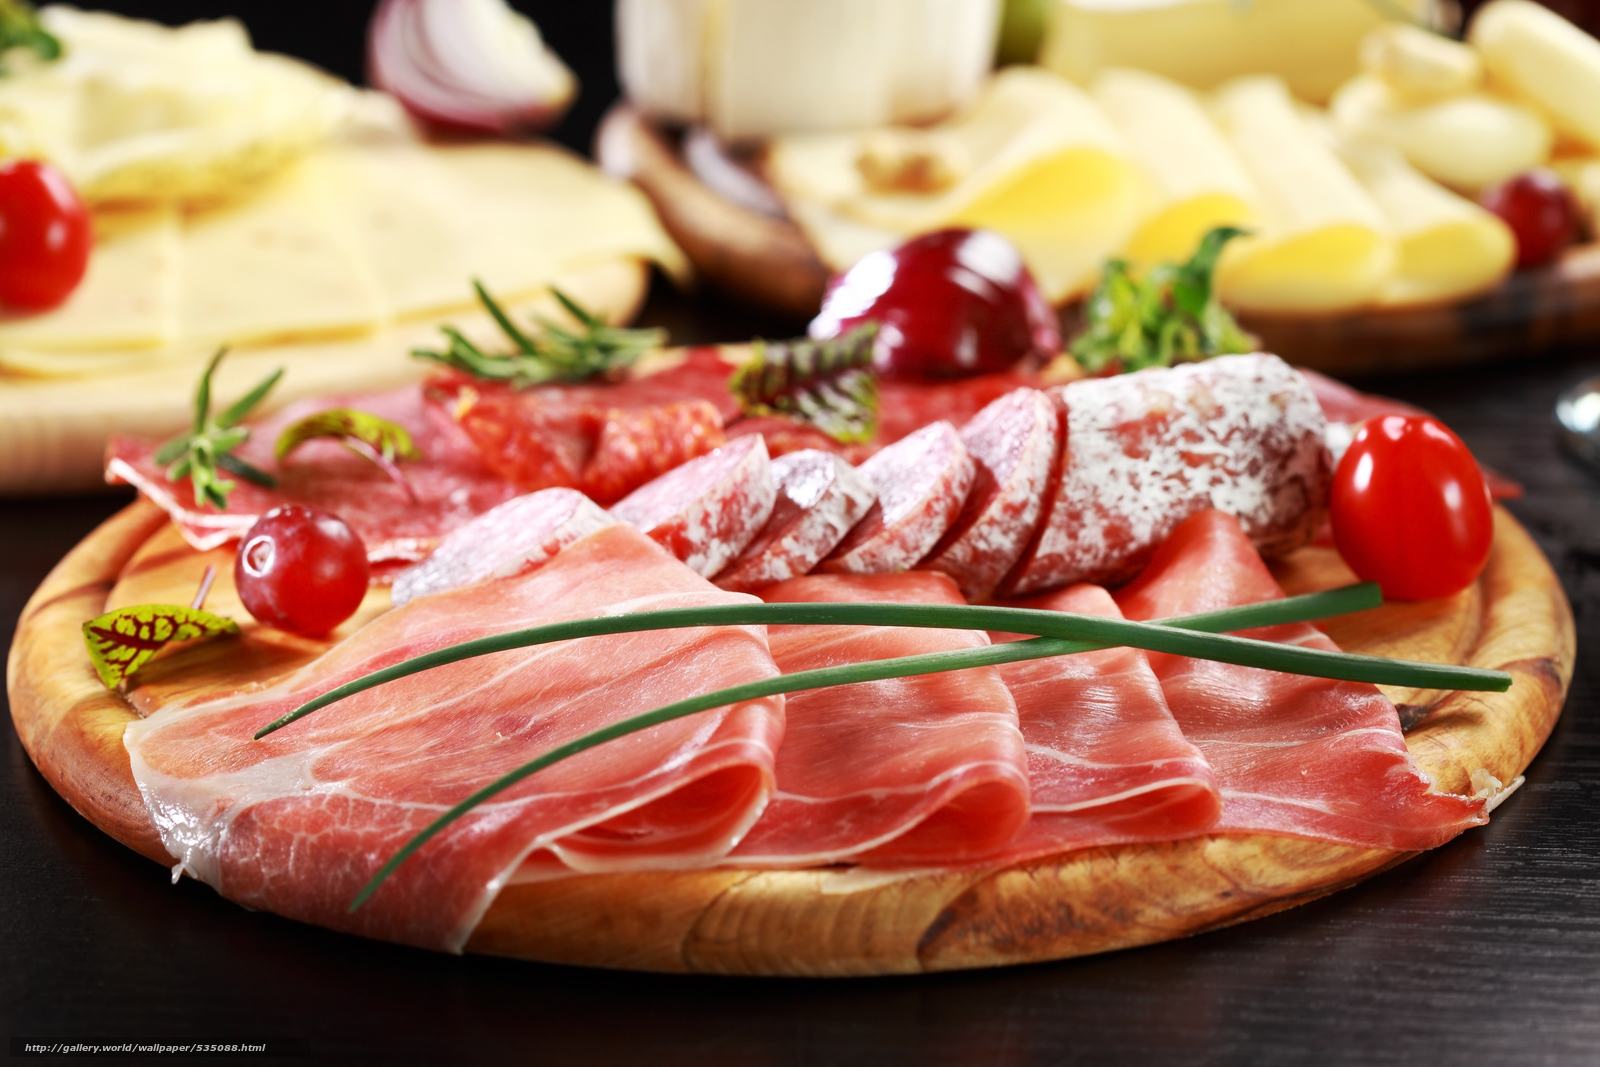 Download wallpaper sausage,  salmon,  meat,  cheese free desktop wallpaper in the resolution 5906x3937 — picture №535088